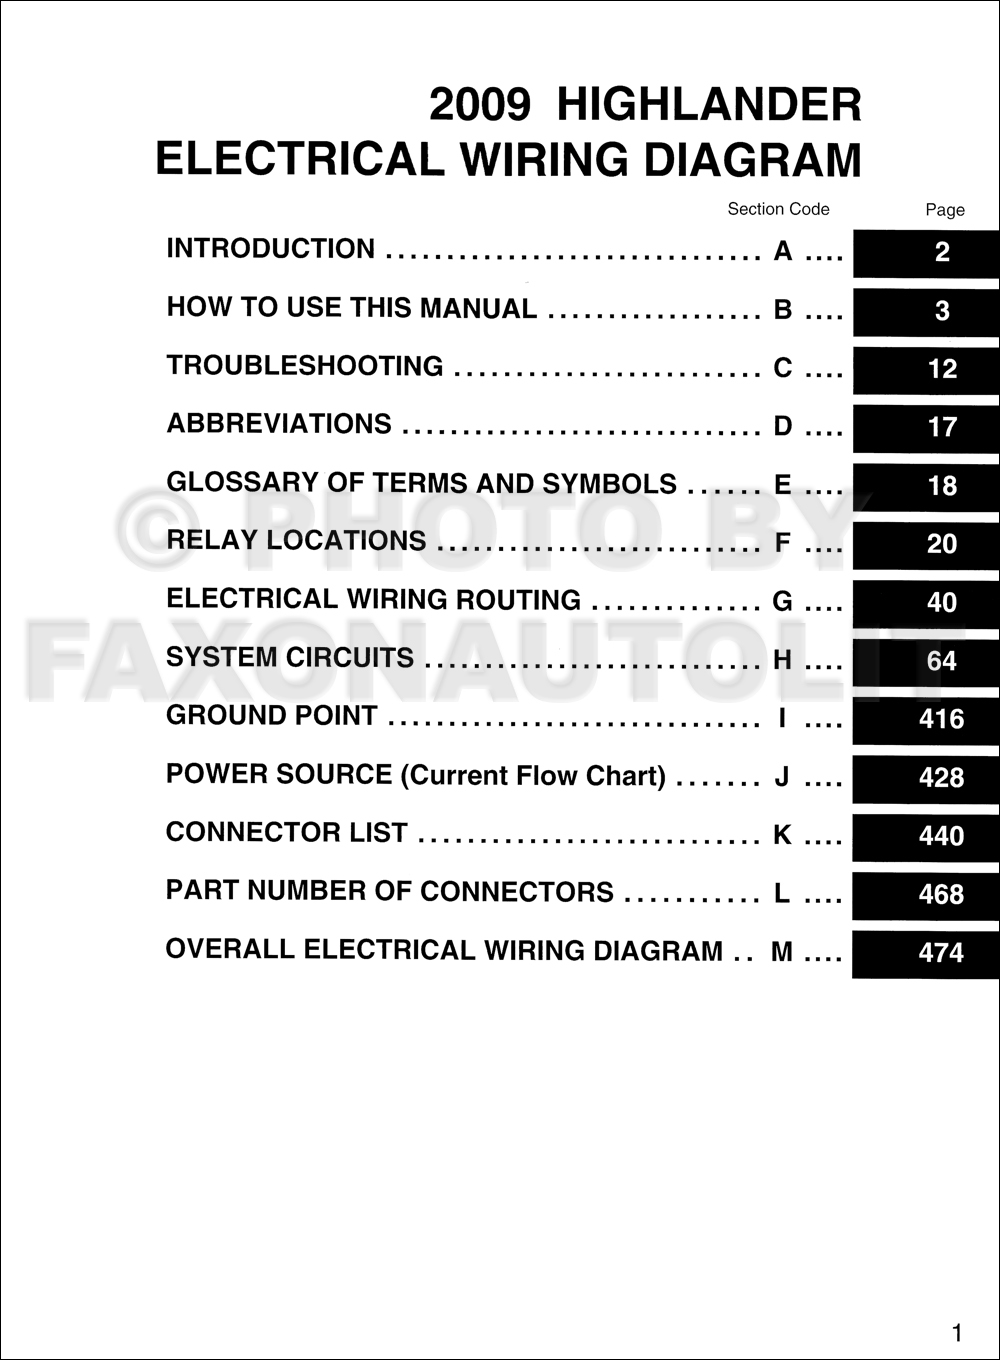 2004 toyota corolla electrical wiring diagram wiring diagram and toyota corolla verso electrical wiring diagram maker